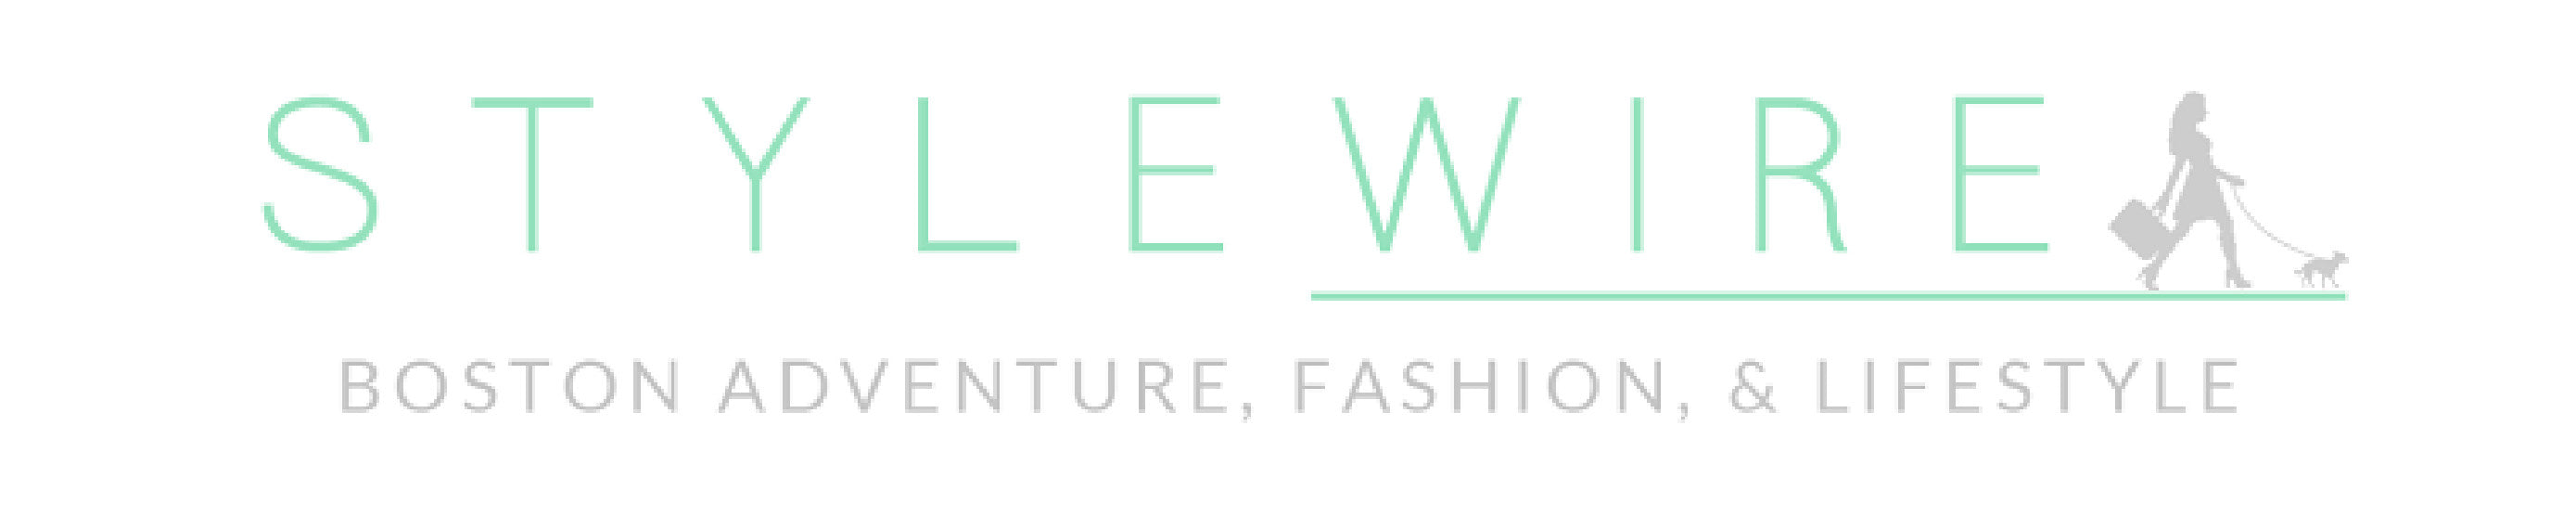 Style Wire logo